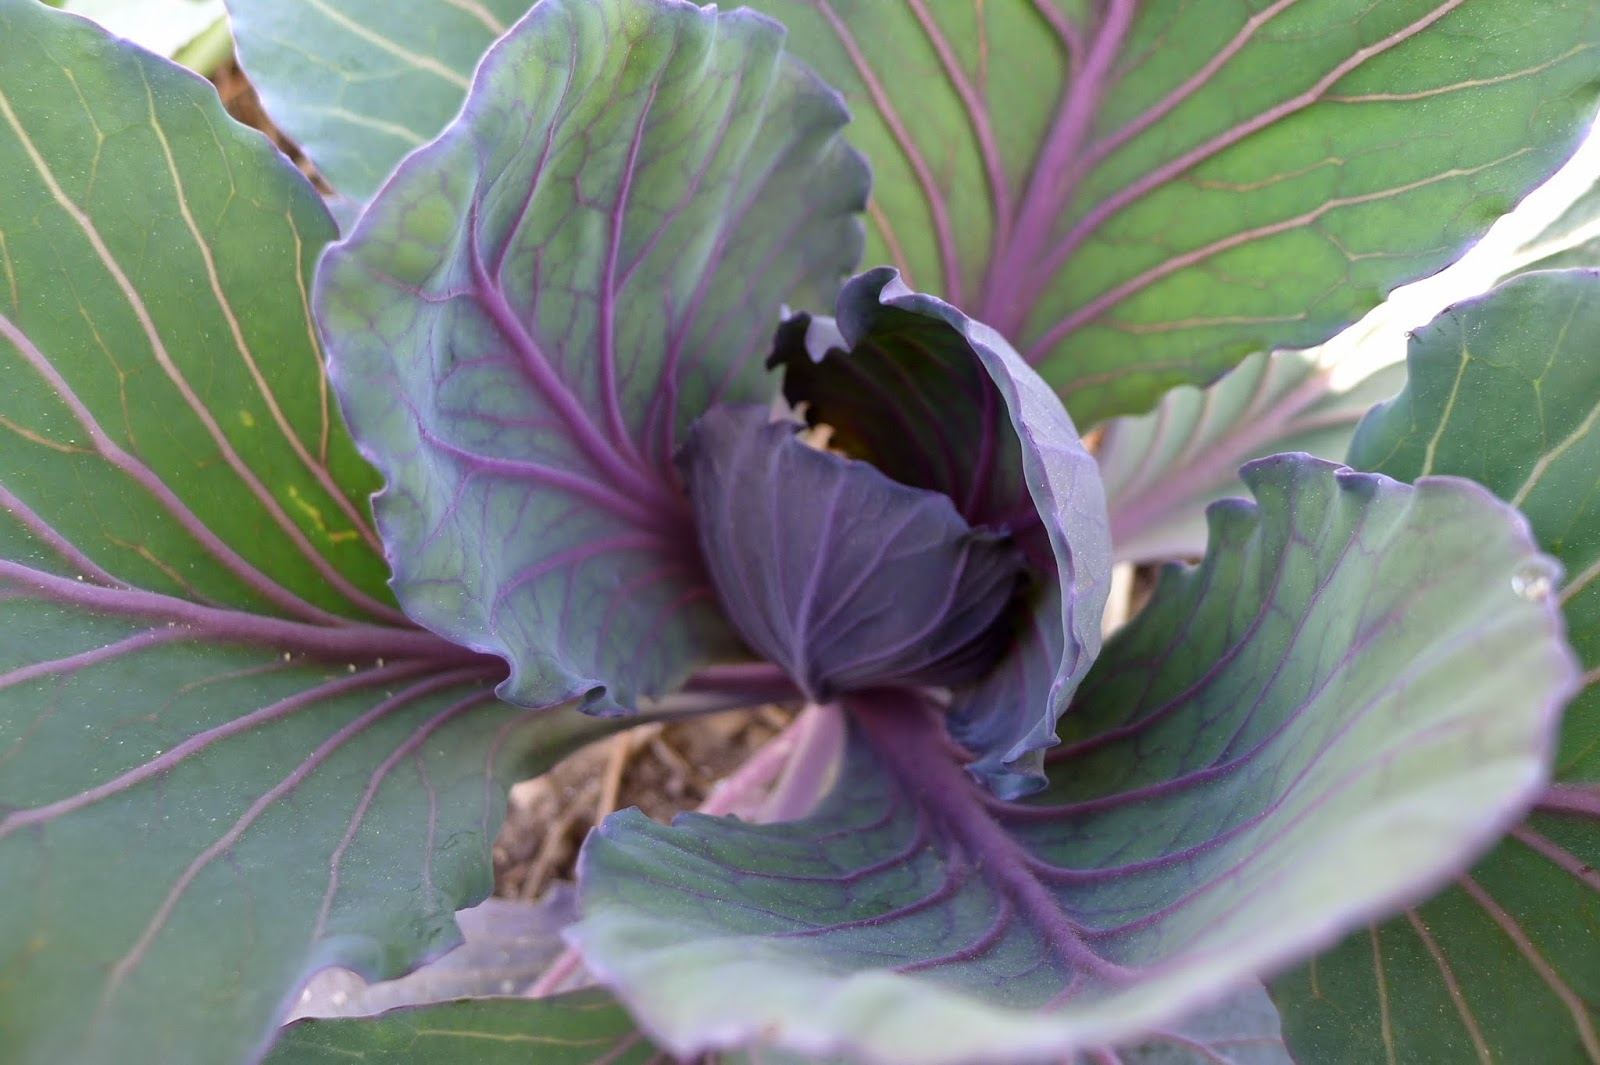 Red Salad Cabbage, urban farming